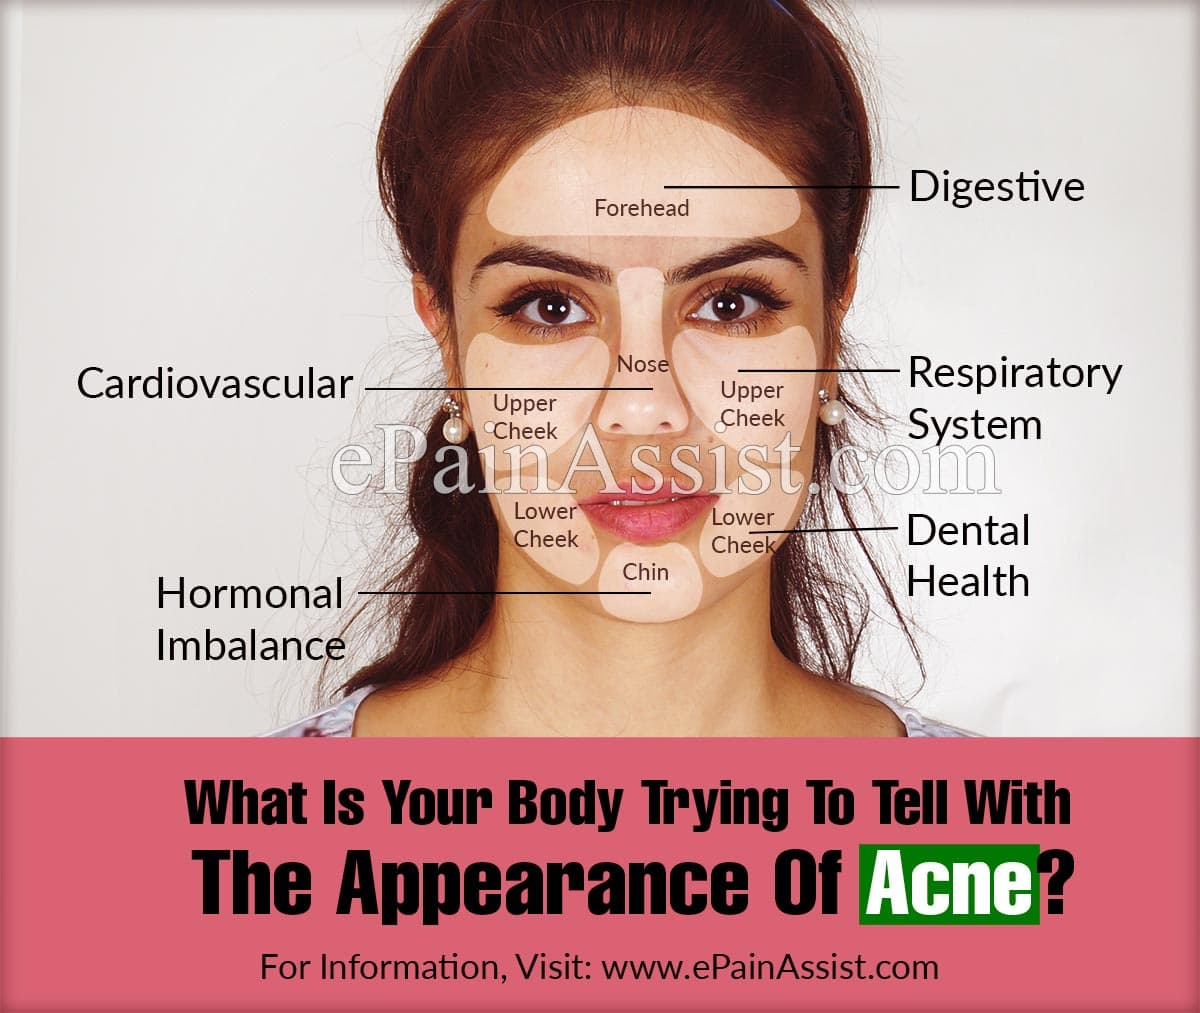 What Is Your Body Trying To Tell With The Appearance Of Acne?